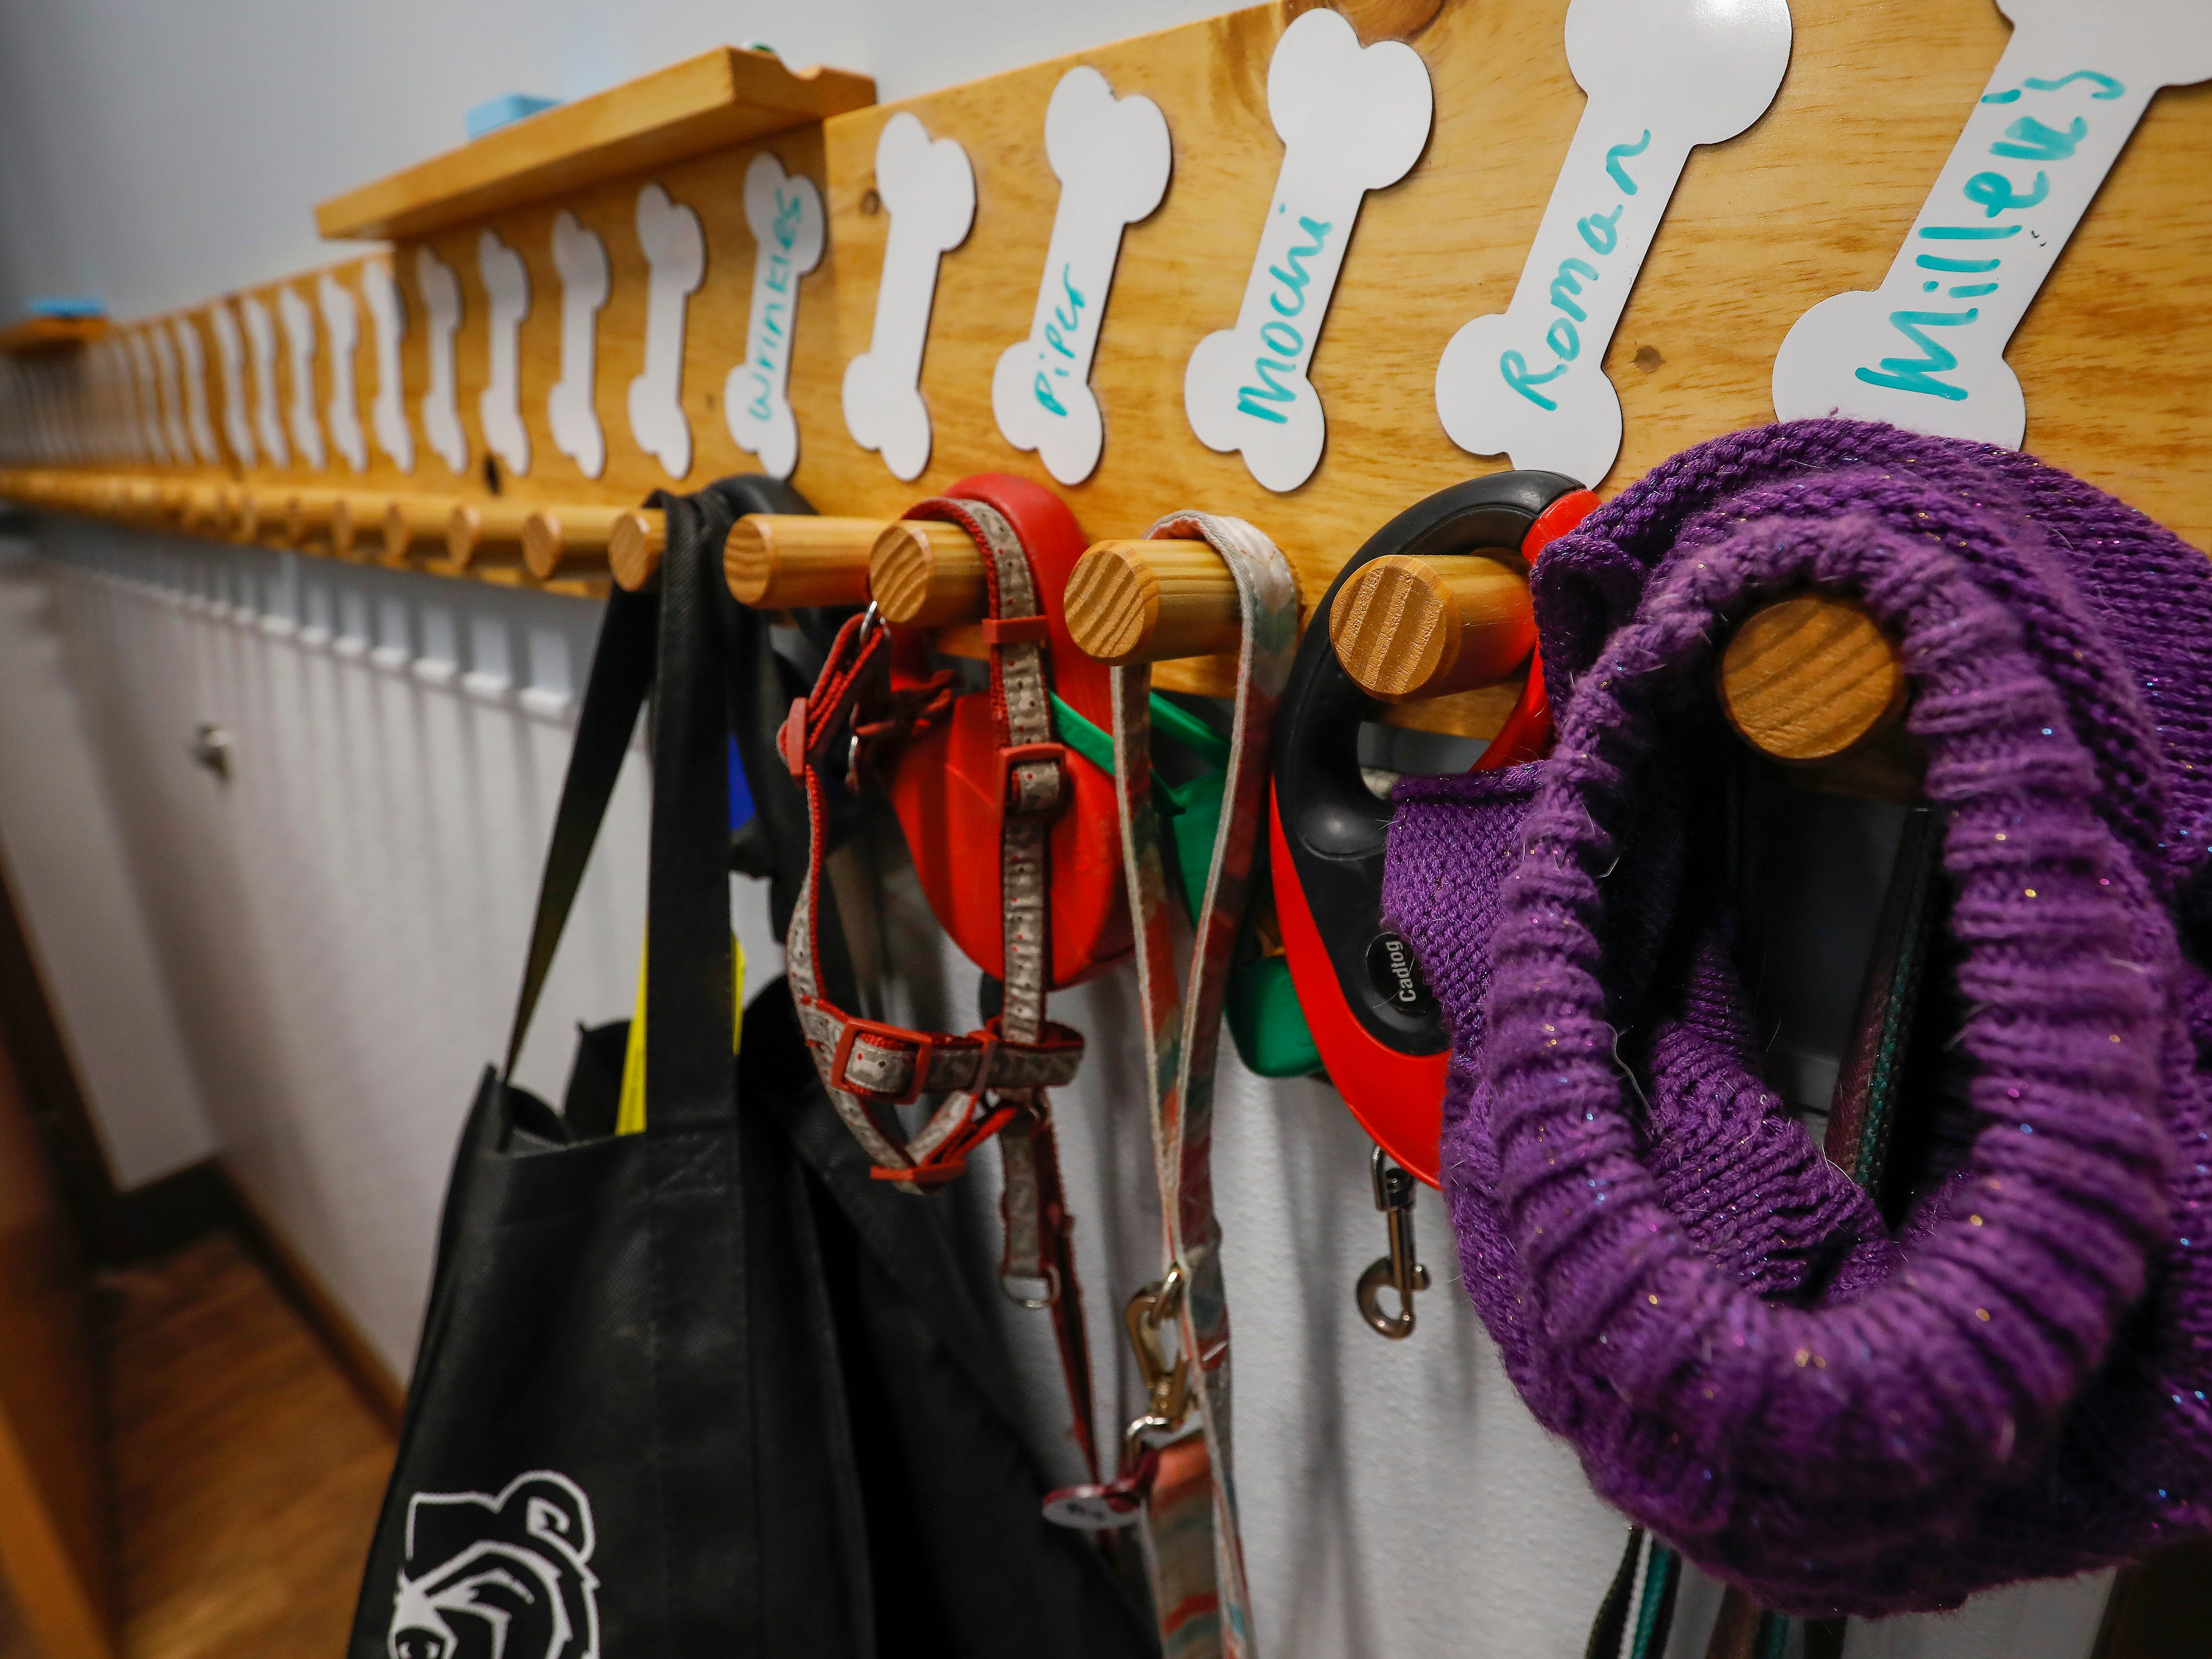 The coat rack at Camp Bow Wow holds dog's leashes, sweaters and other items.